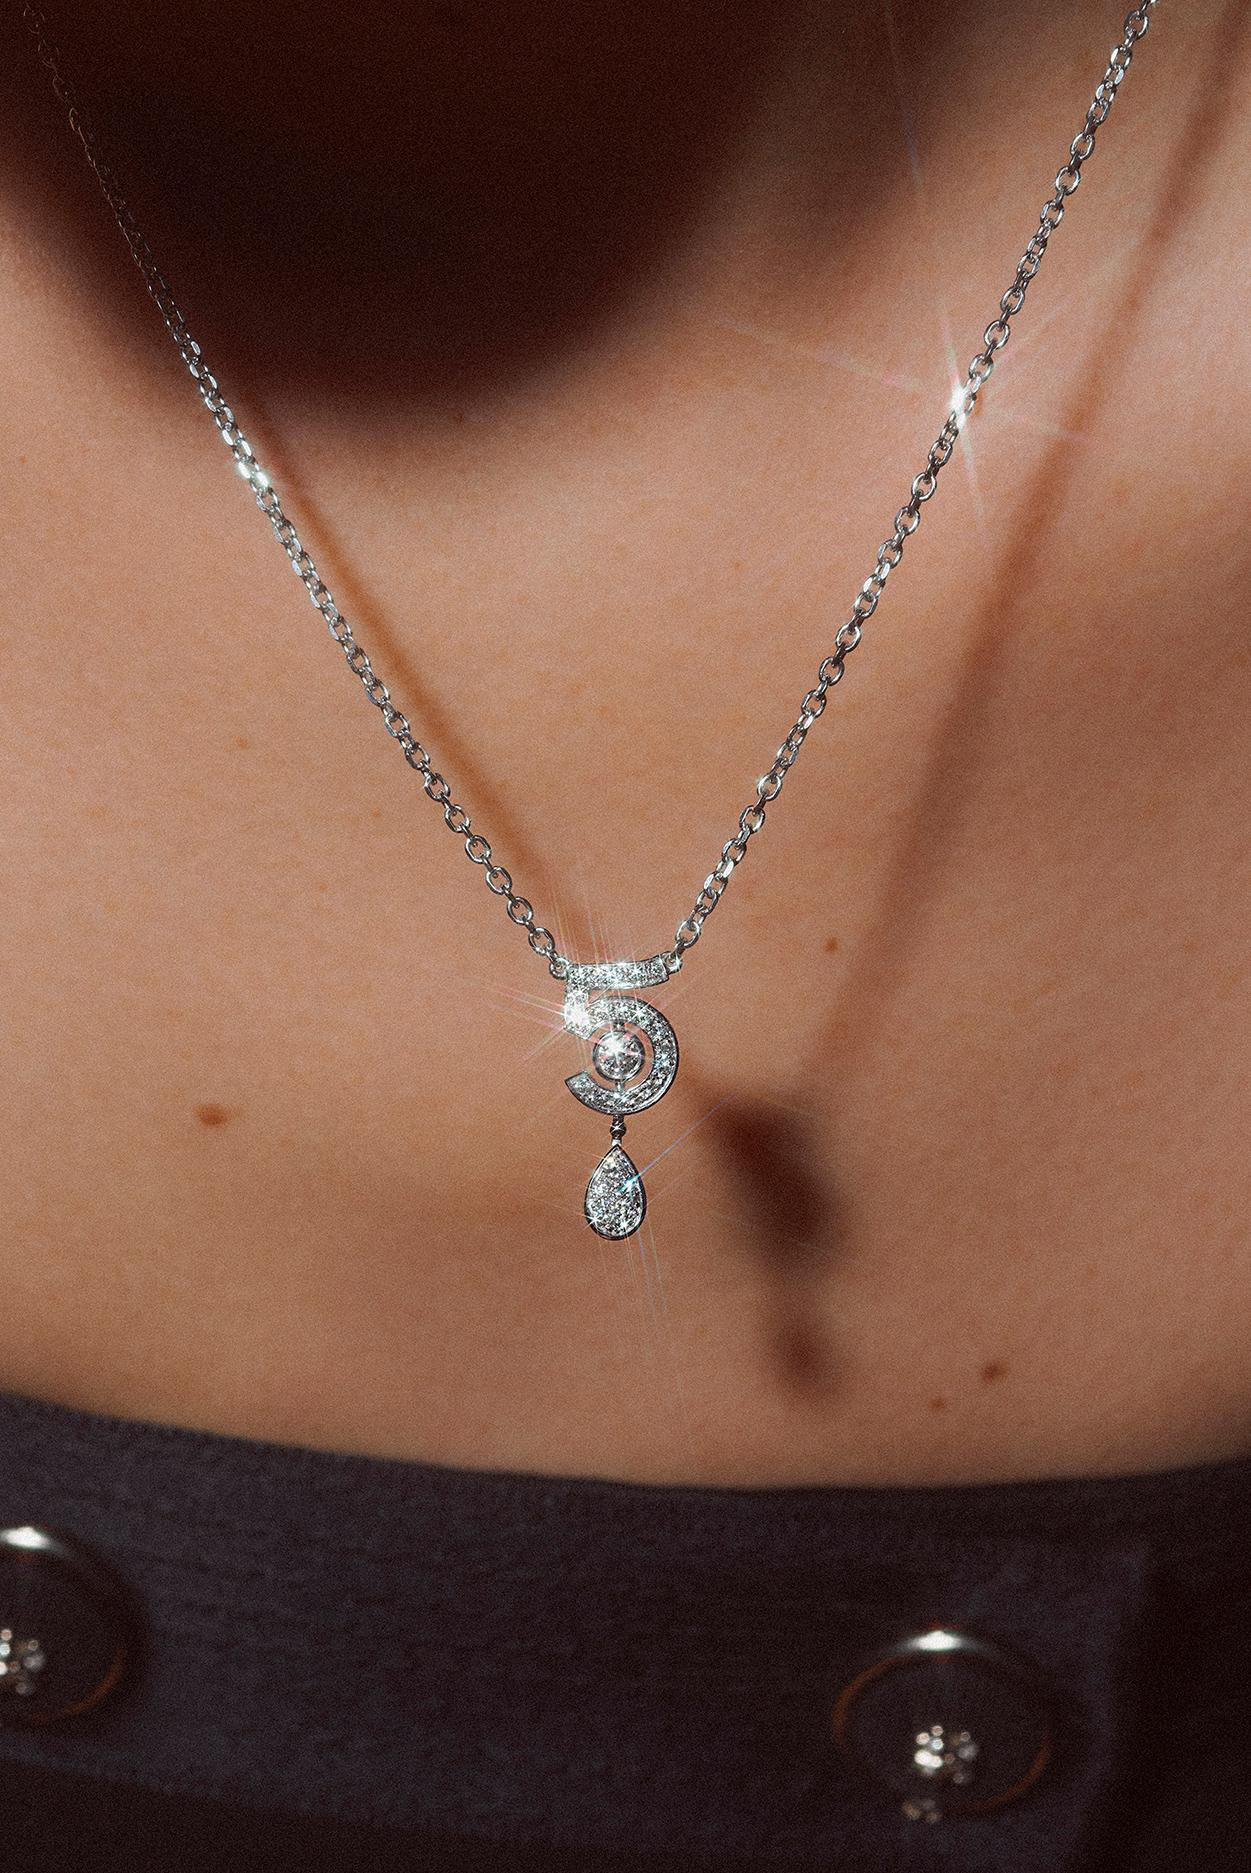 J11991 N°5 necklace - view 3